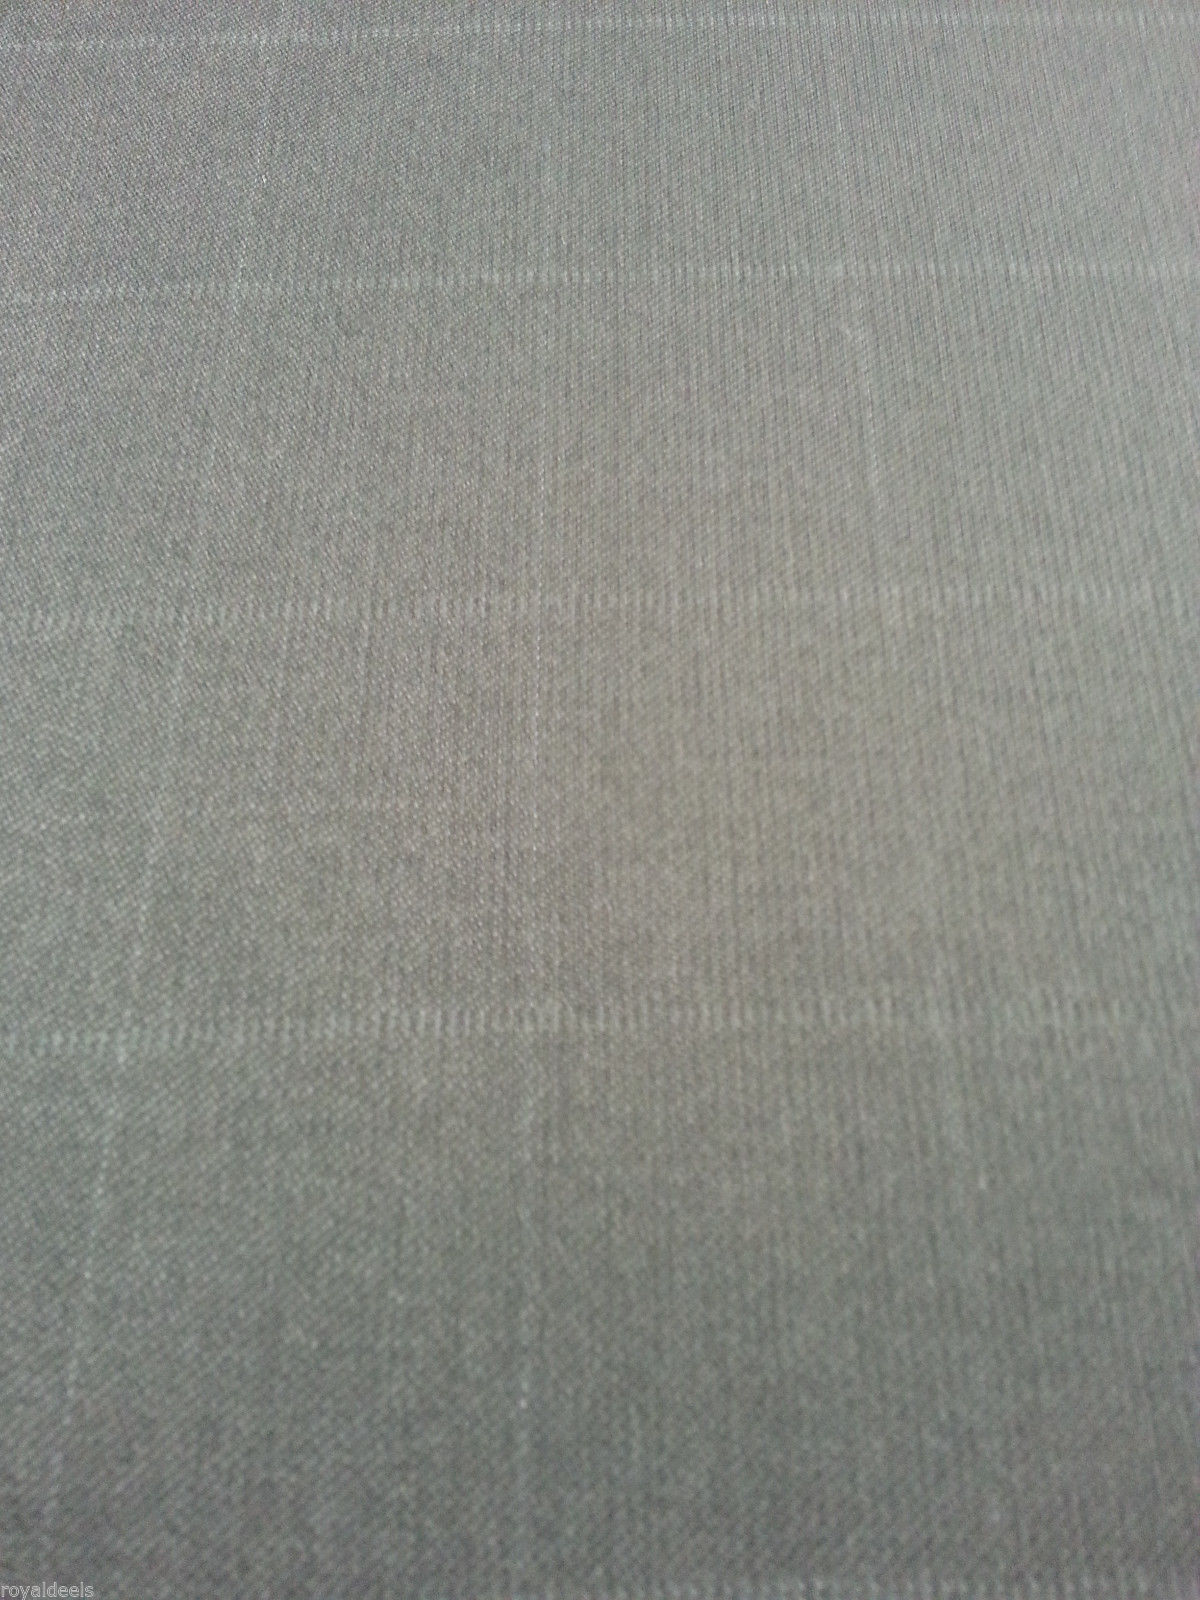 Super 130'S Italian Wool Checked Fine Suiting fabric  4.5 Yard- MSRP $750